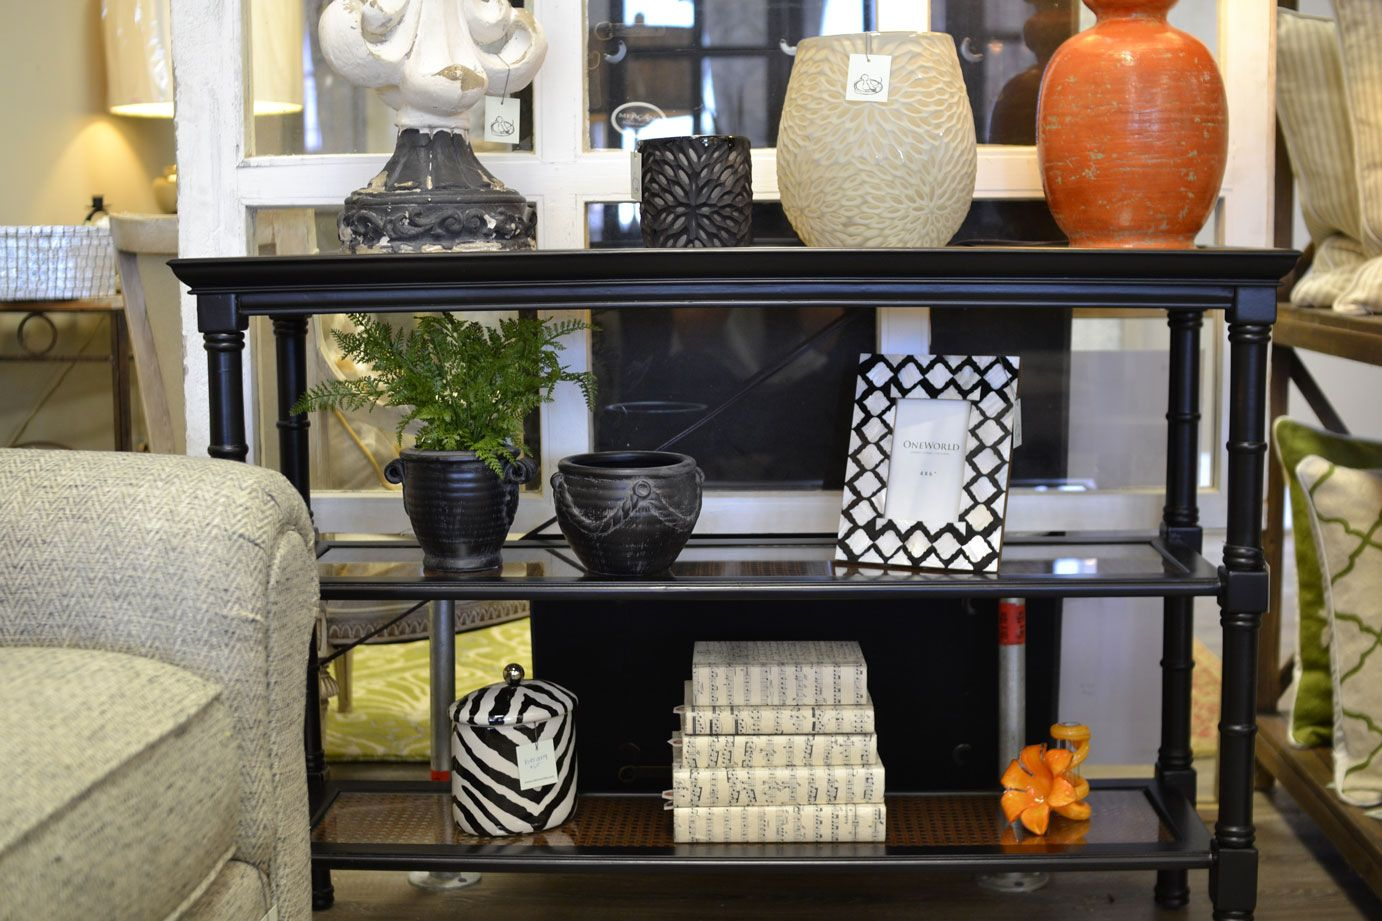 Black and wicker side table with shelves.  Robin's Nest Interiors - Louisville Interior Design & Home Accessories Boutique located in the heart of Middletown, KY.